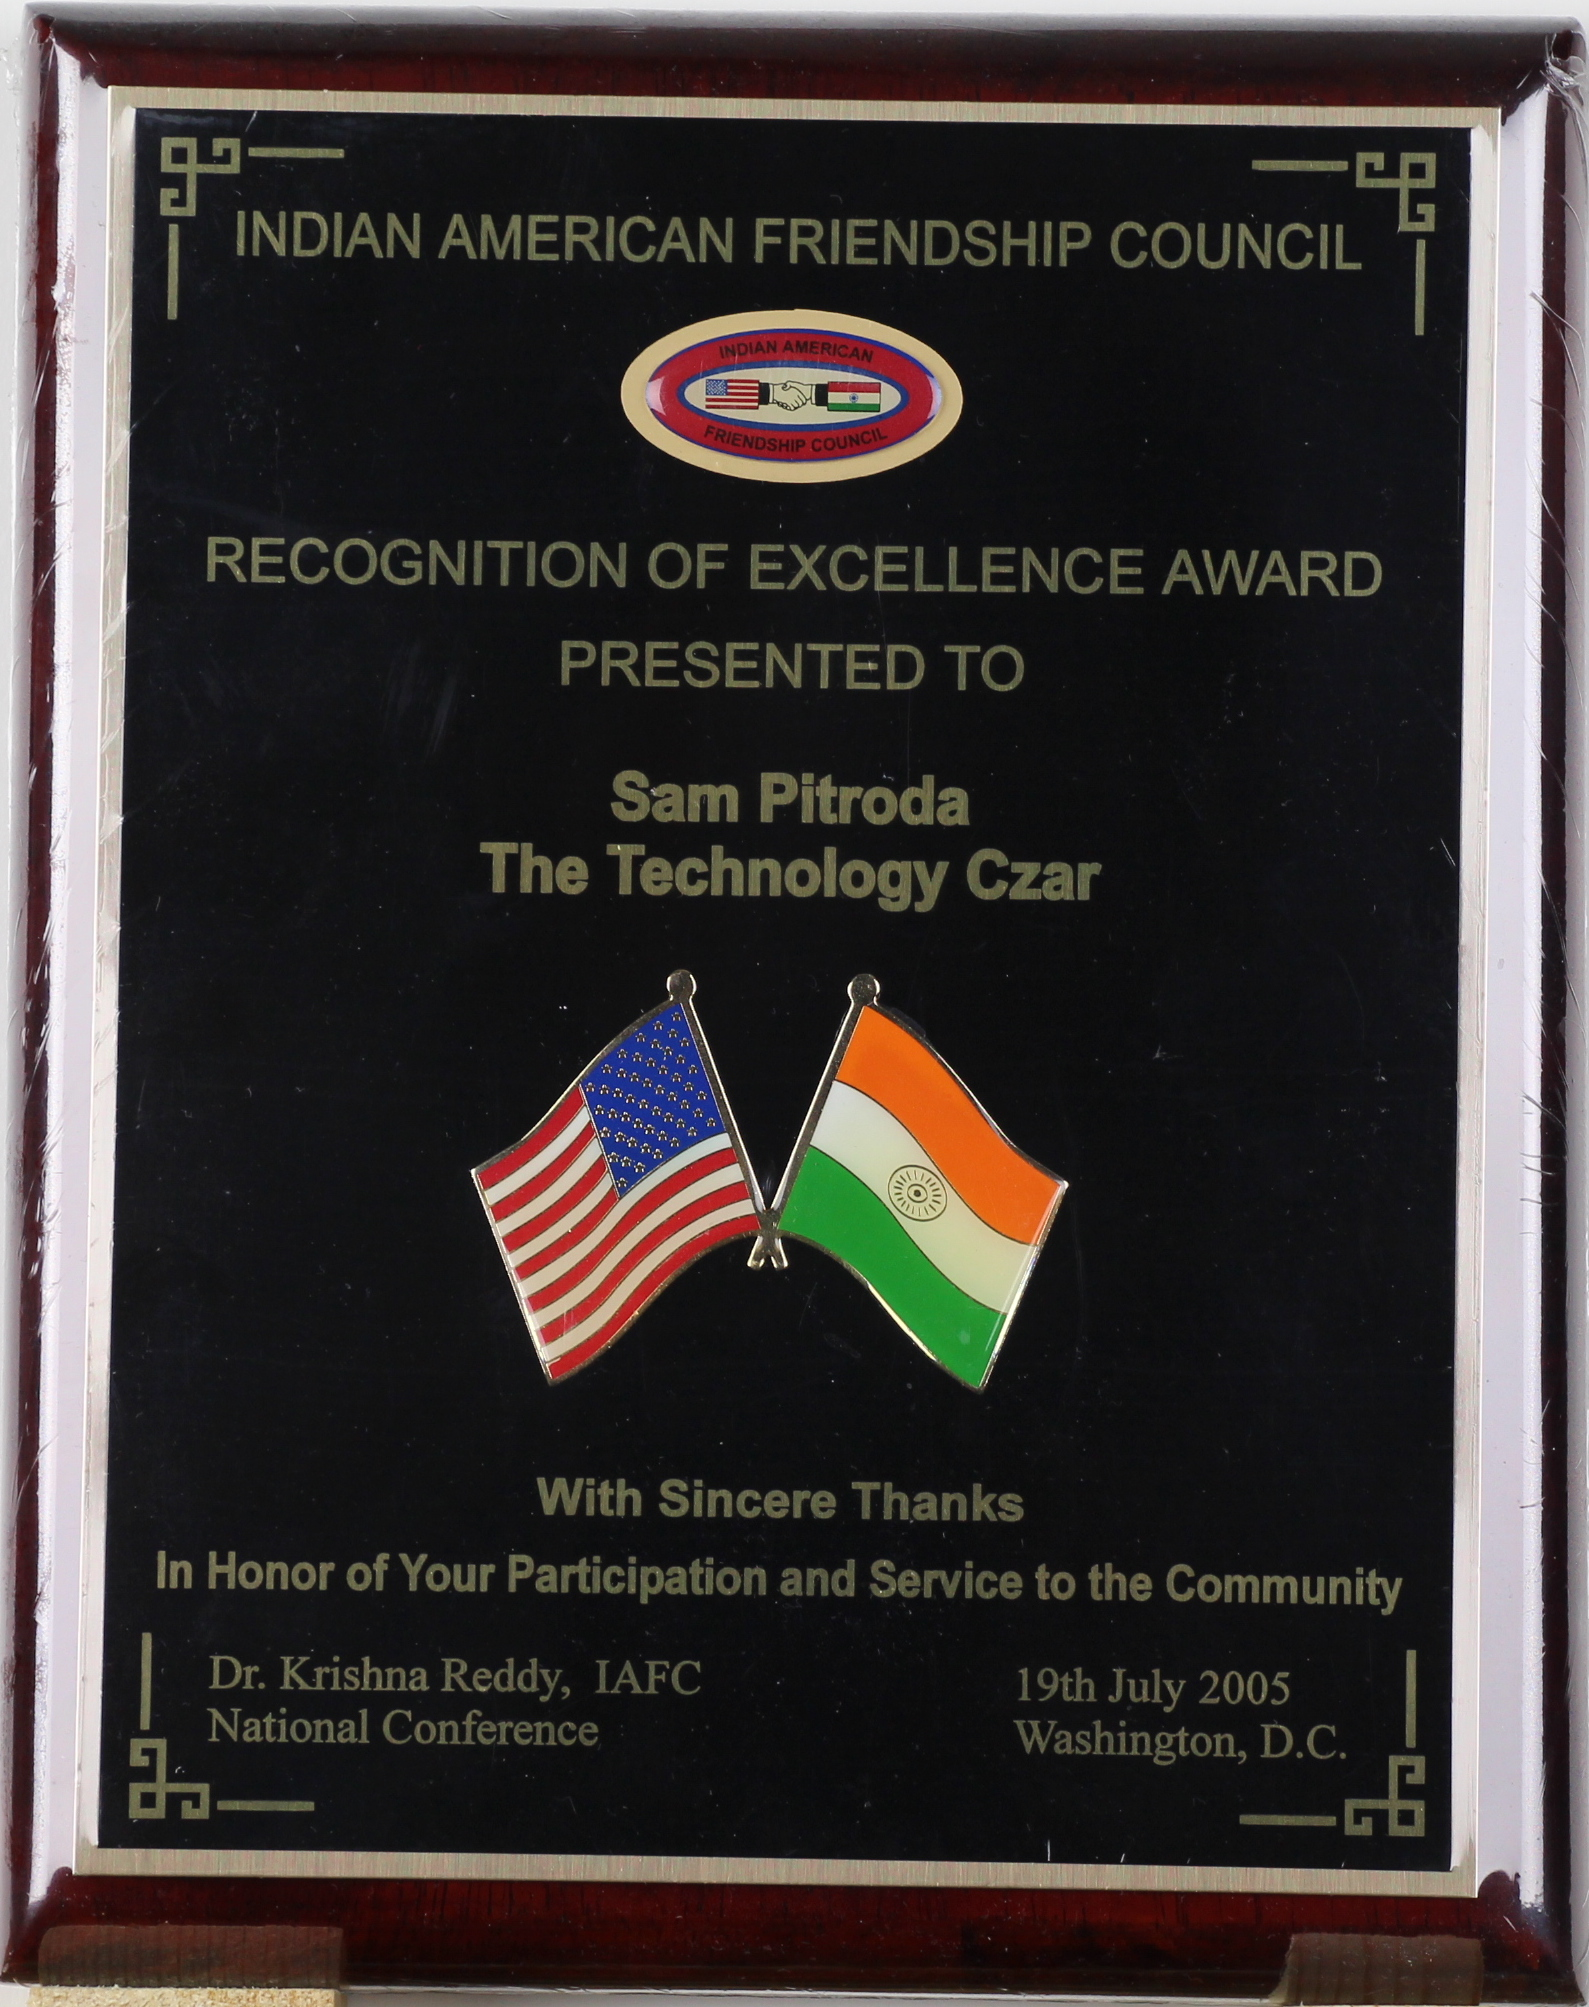 Recognition of Excellence Award, Indian American Friendship Council, Washington, DC, 2005